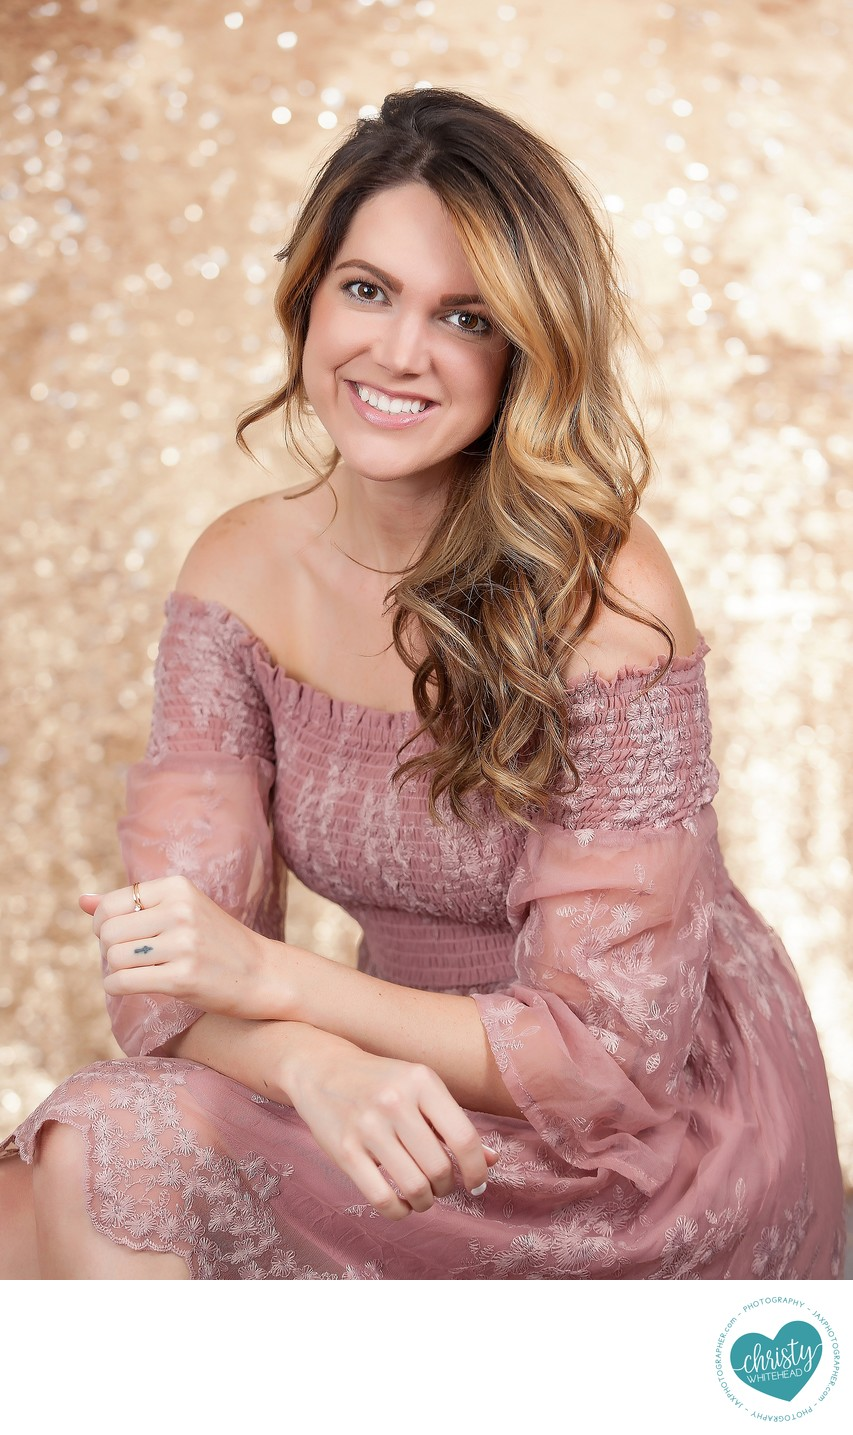 Stunning Young Lady Photo Shoot Christy Whitehead